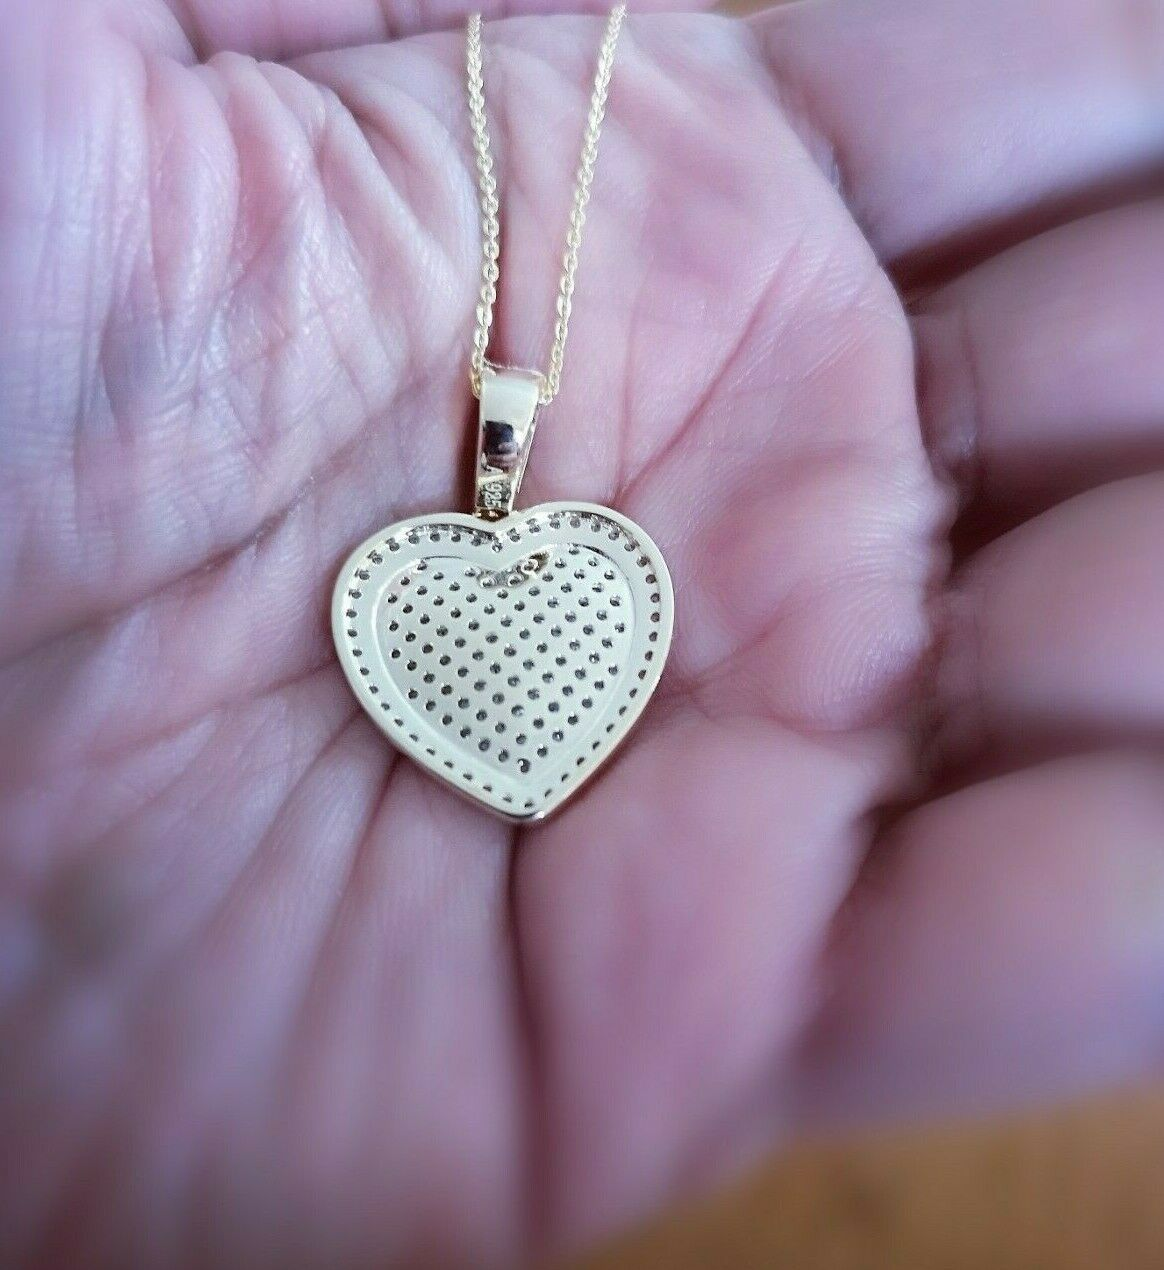 1 Ct Diamond Pendant Womens Necklace Heart Shape in 14K Yellow Gold over Chain 6